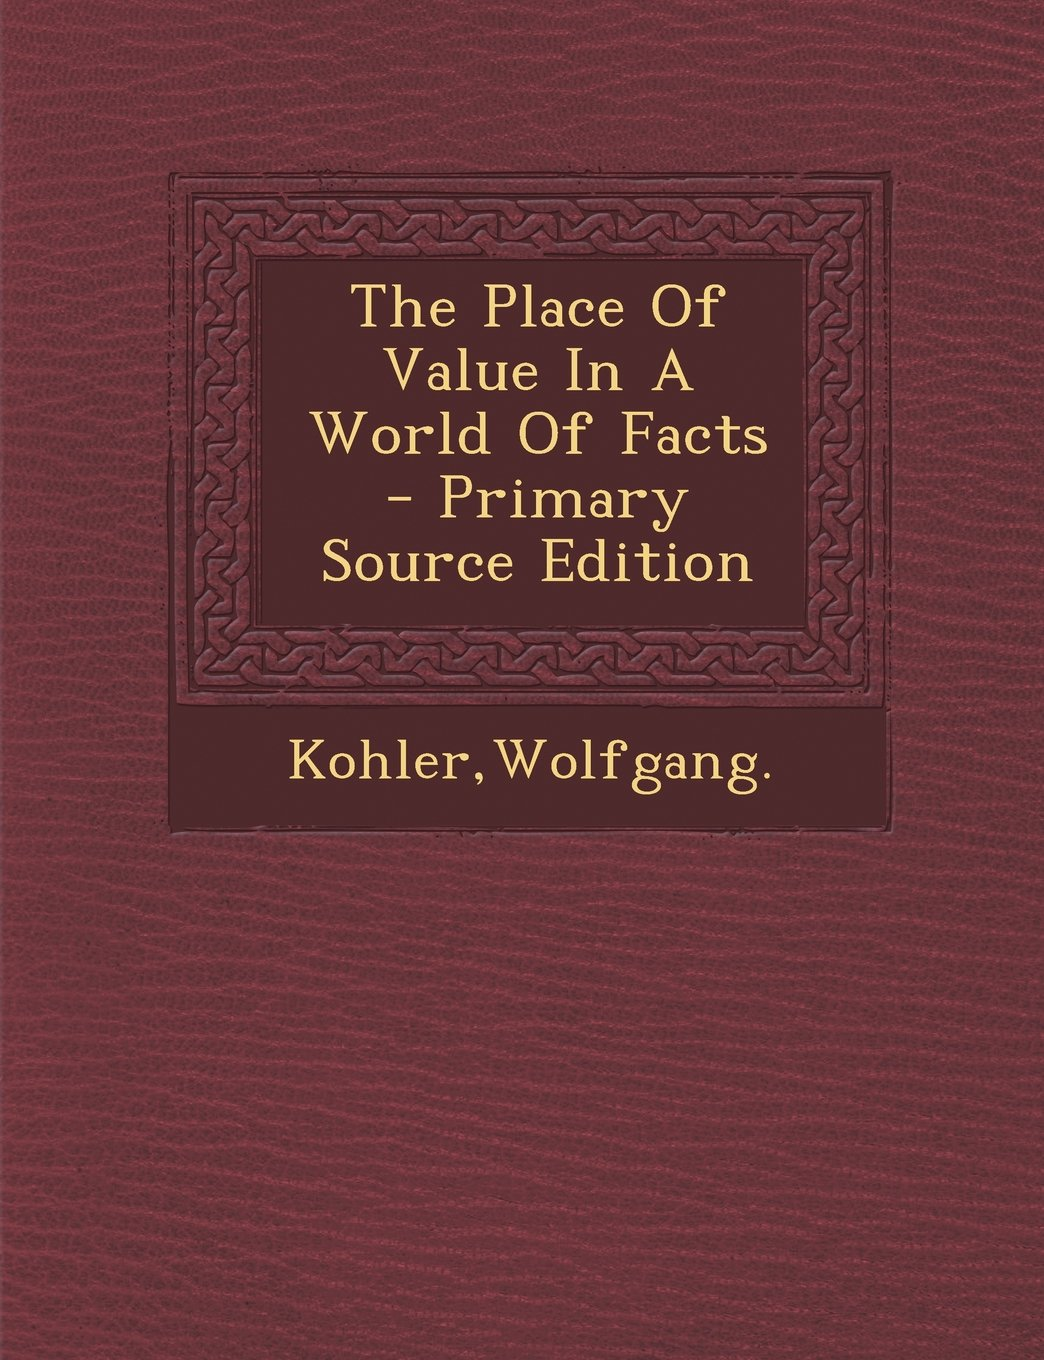 The Place Of Value In A World Of Facts pdf